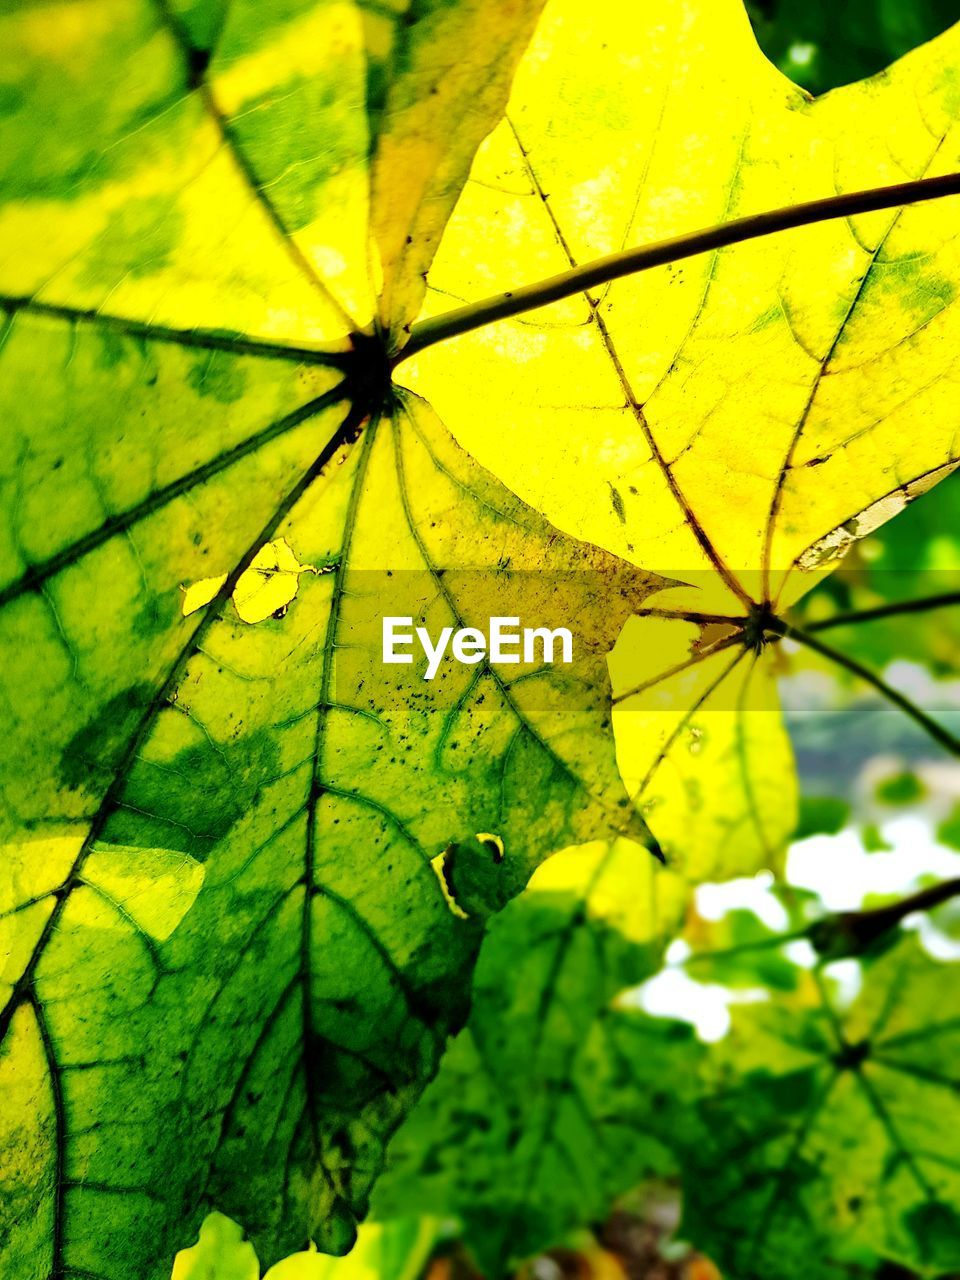 plant, plant part, leaf, yellow, close-up, no people, green color, growth, nature, day, beauty in nature, focus on foreground, outdoors, full frame, backgrounds, freshness, fragility, vulnerability, selective focus, tree, maple leaf, raindrop